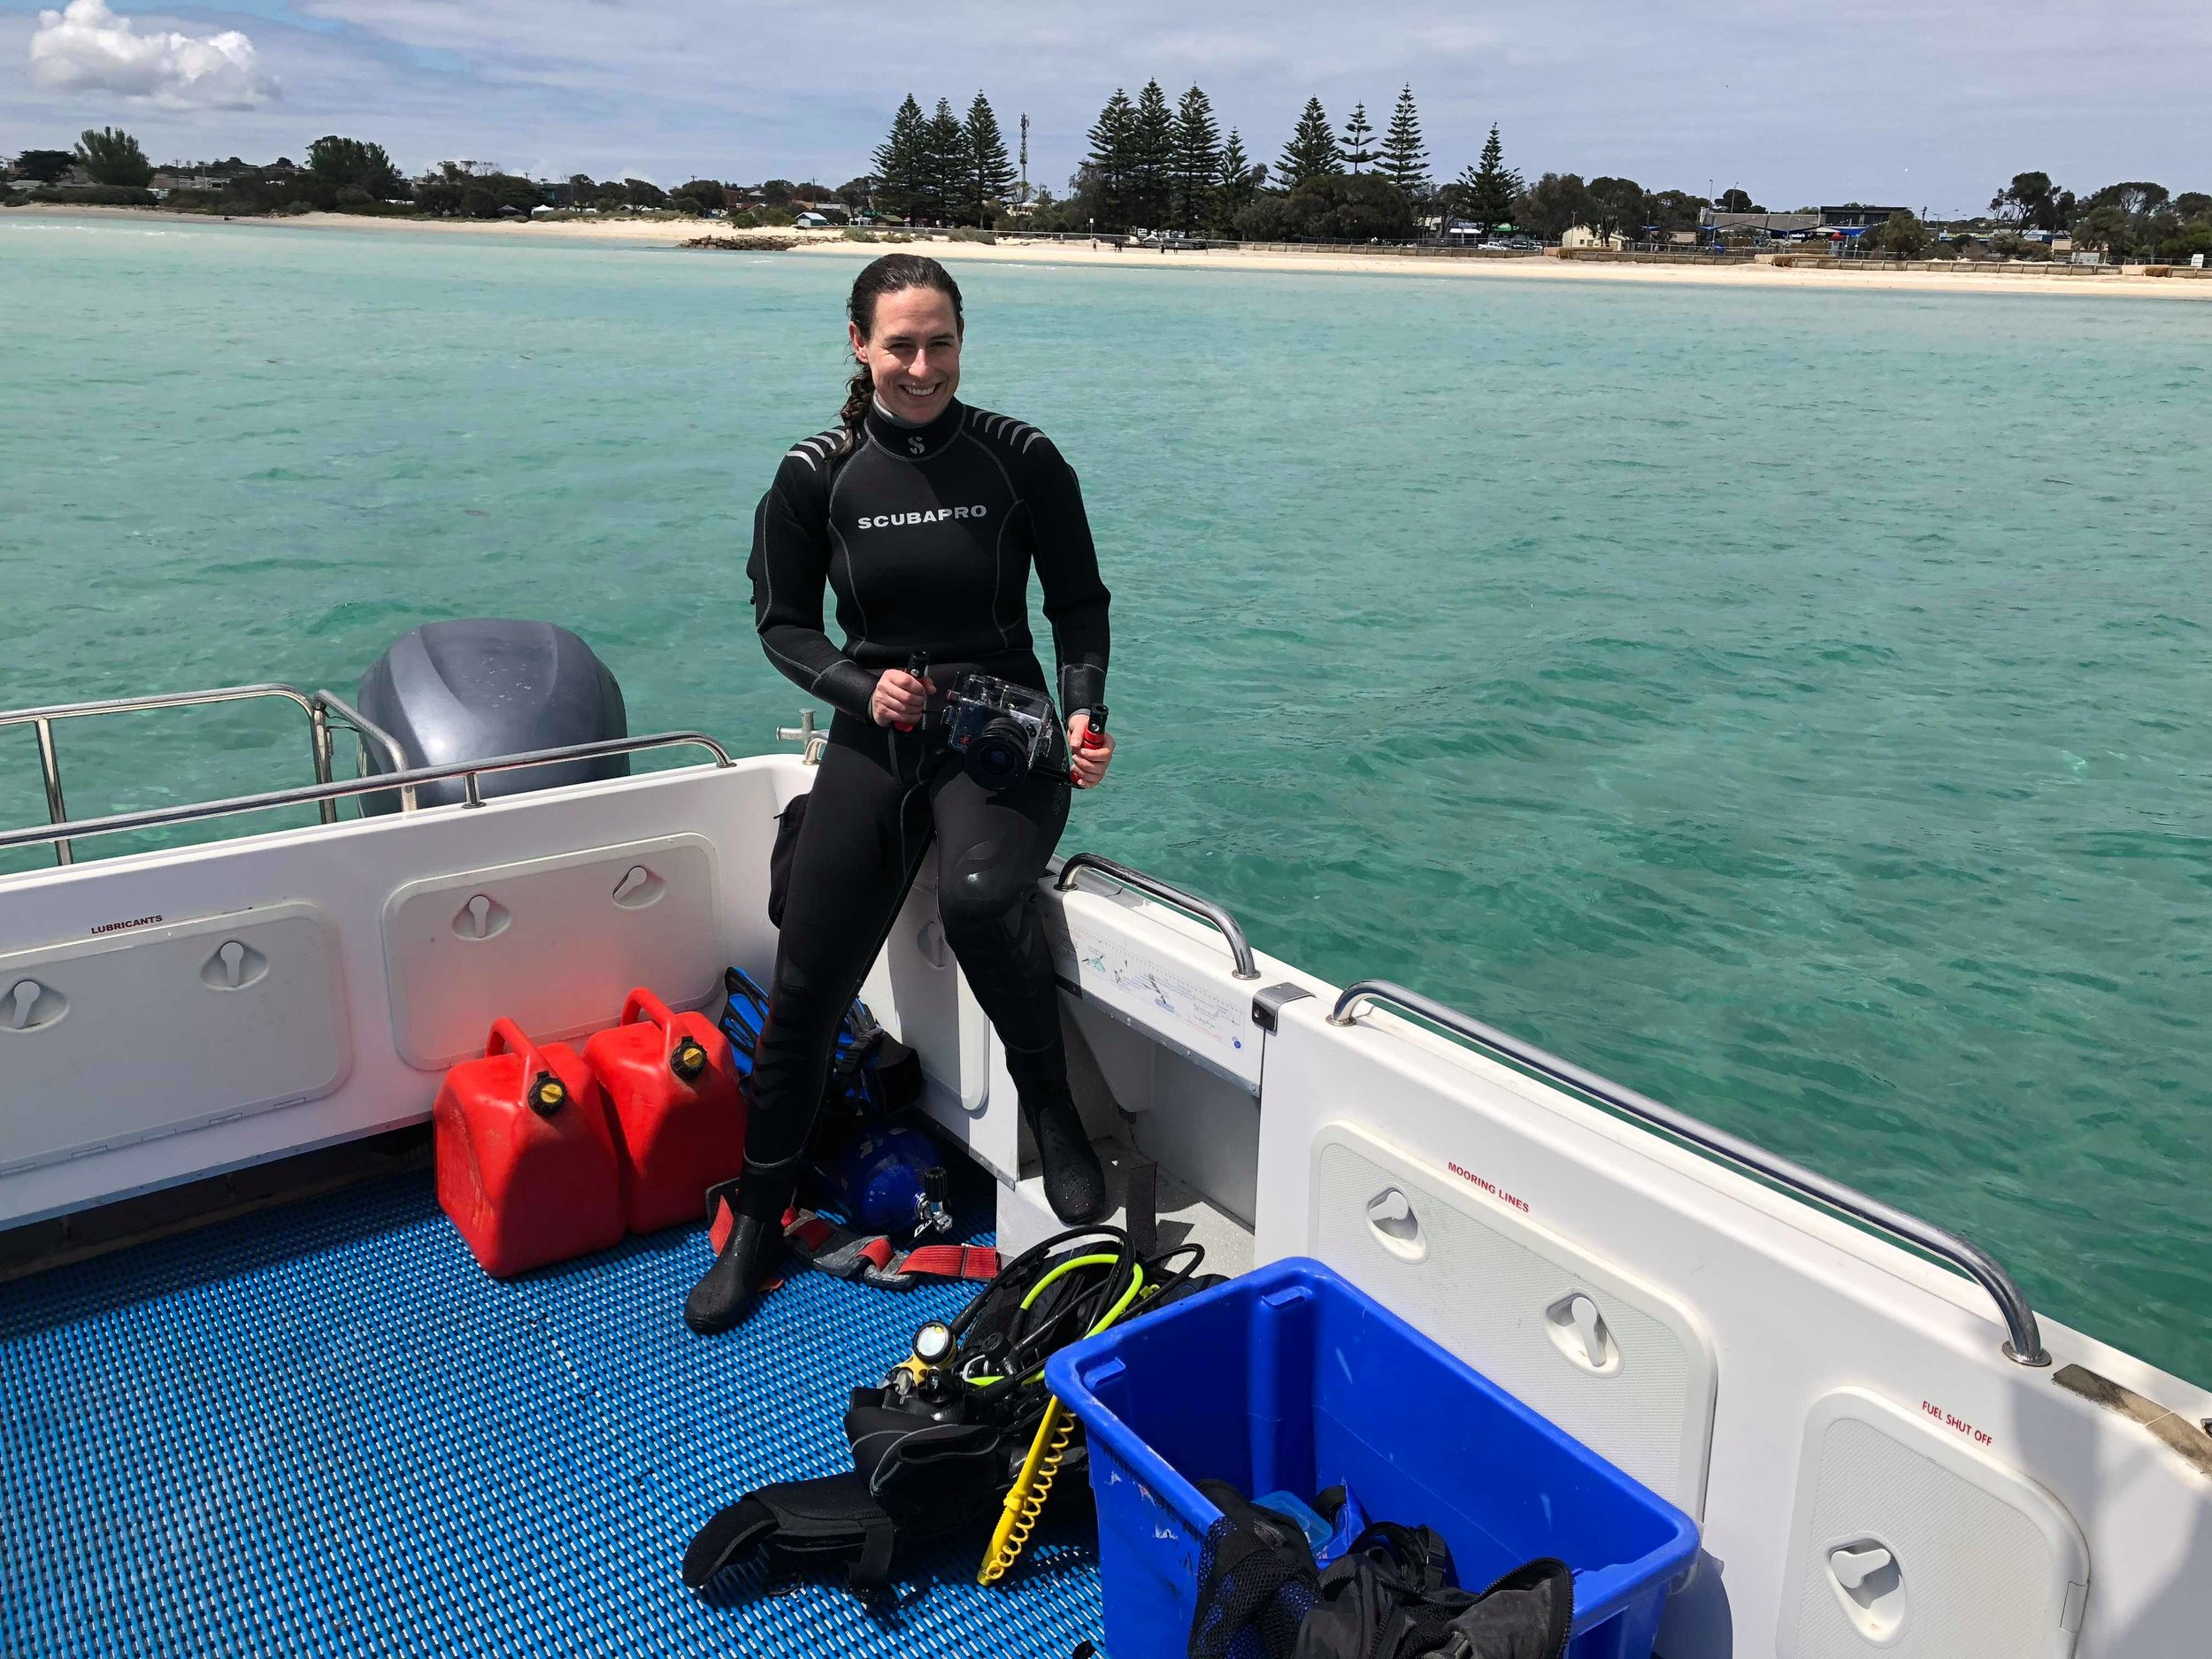 Post-dive Maddy off the coast of Melbourne after discovering a new wreck site. Photo Maddy McAllister ( @shipwreckmermaid )